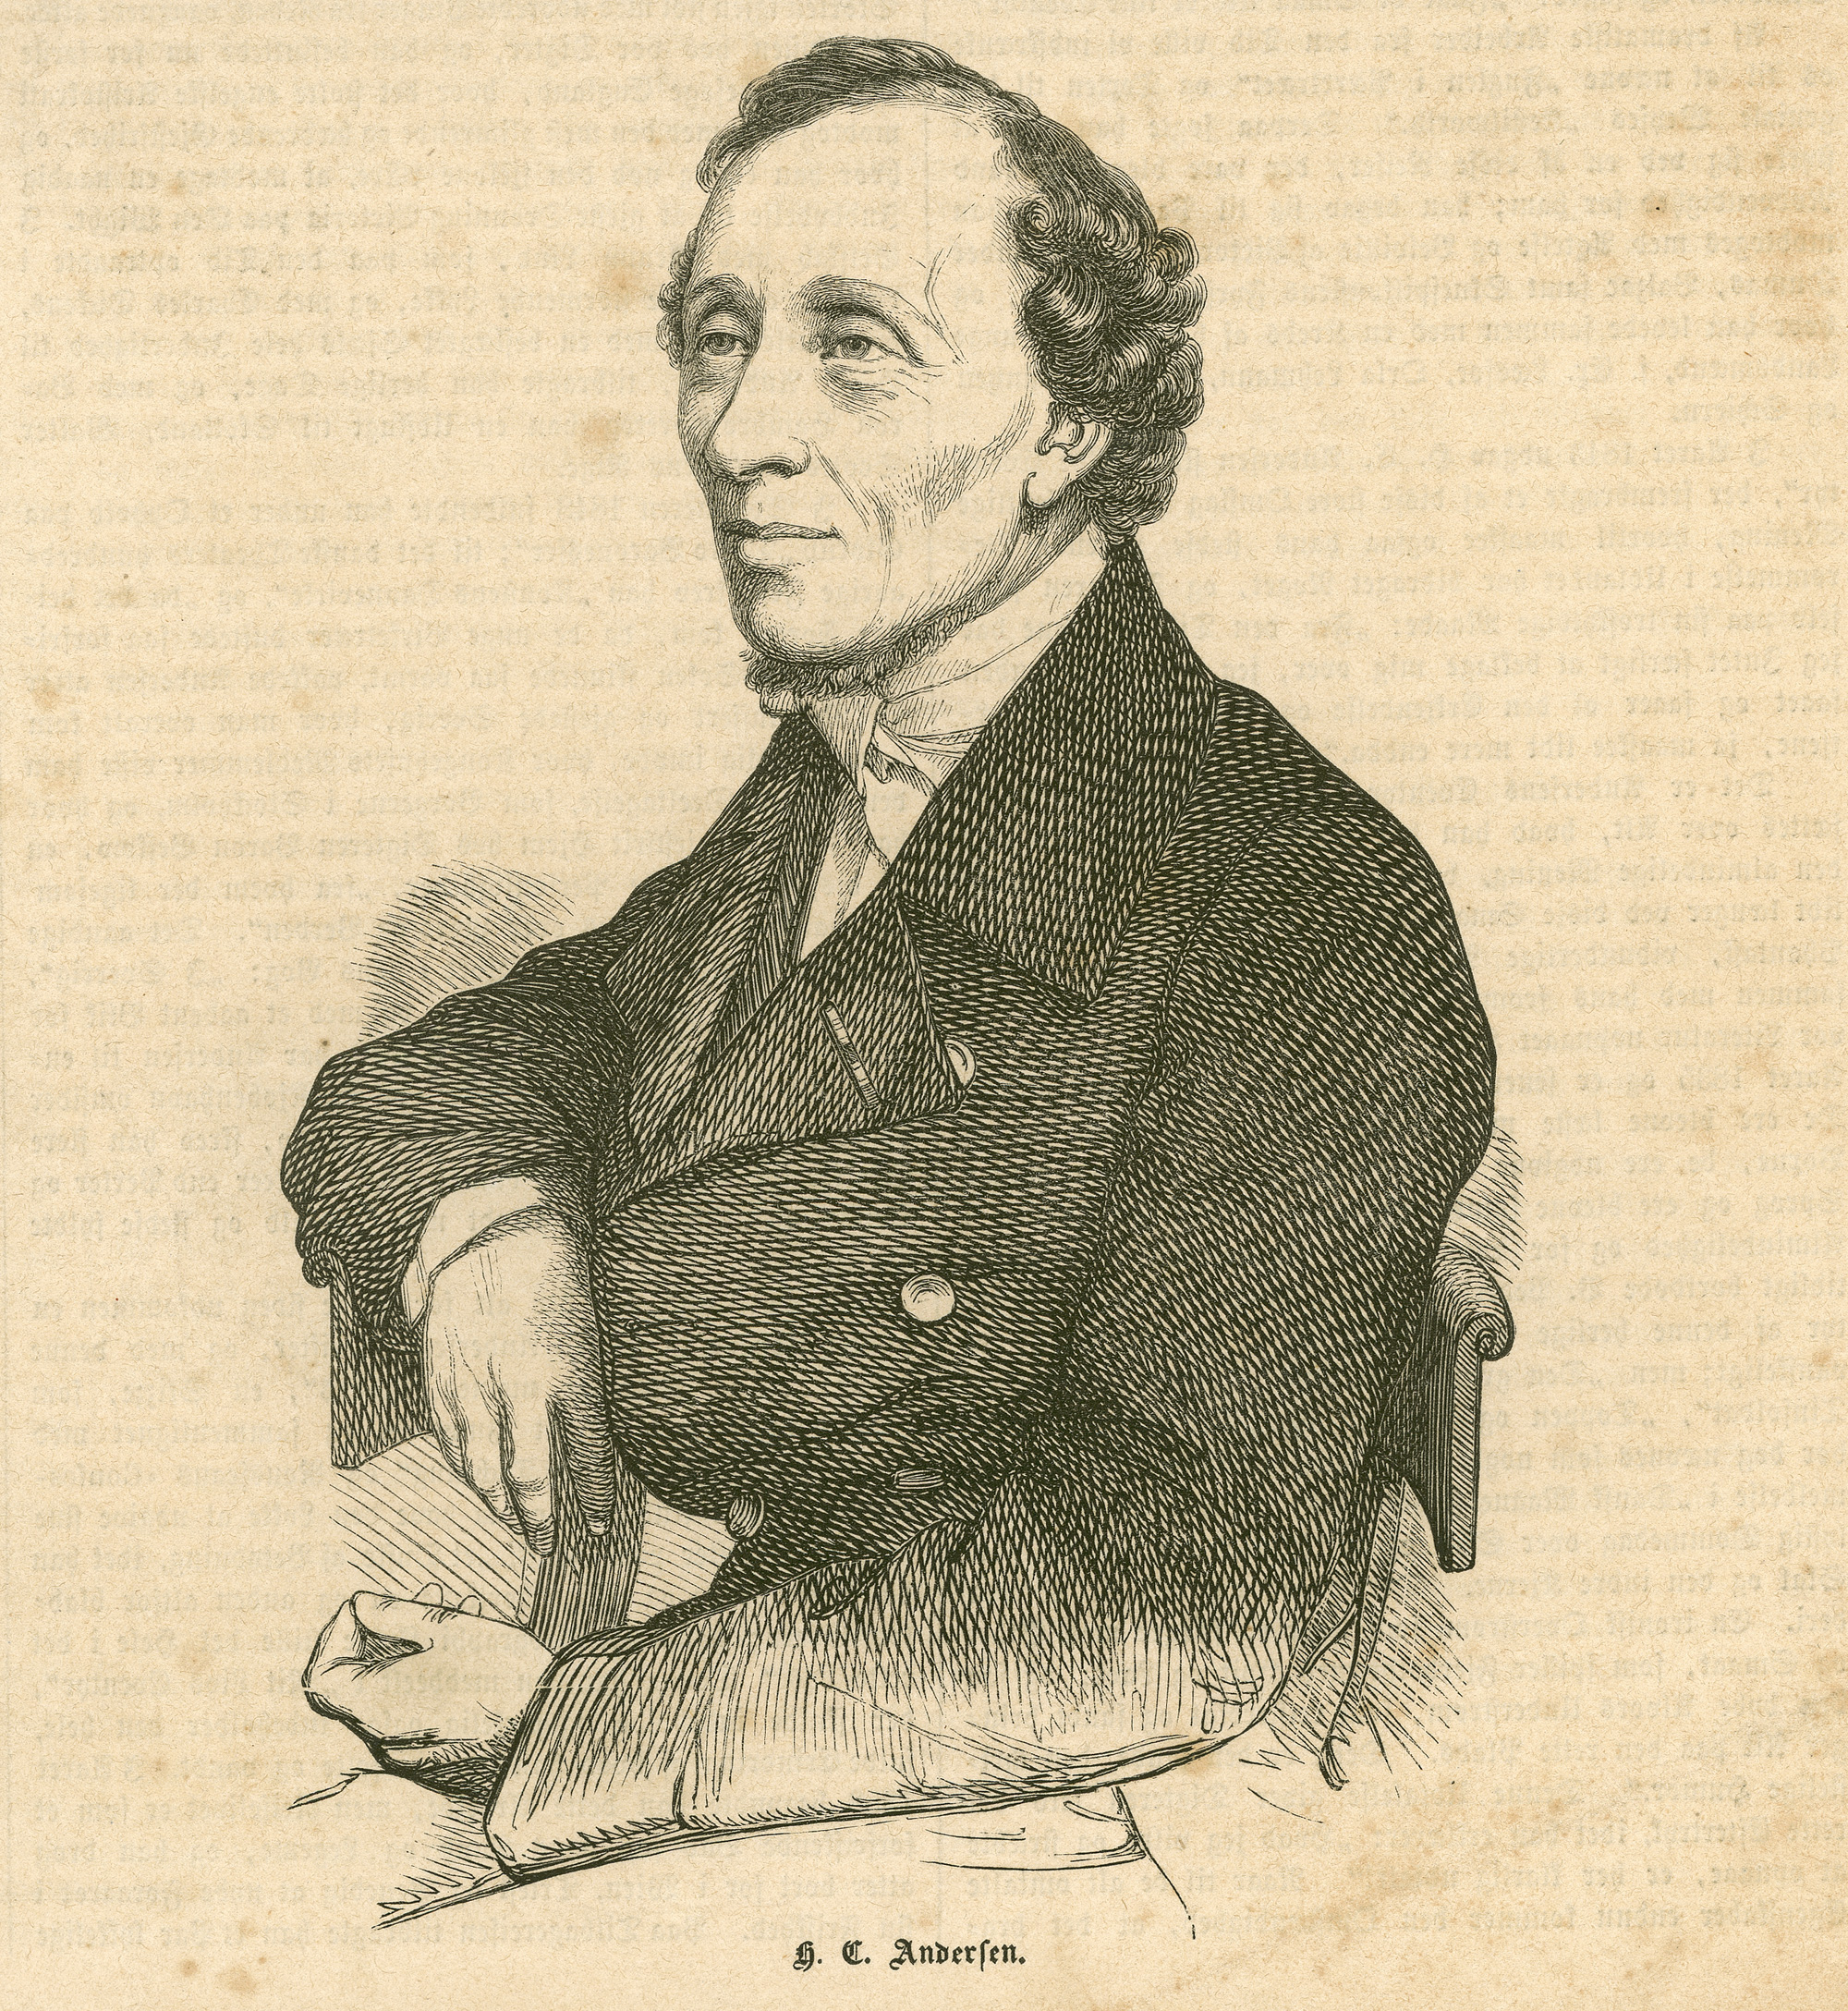 hans christian andersen biography